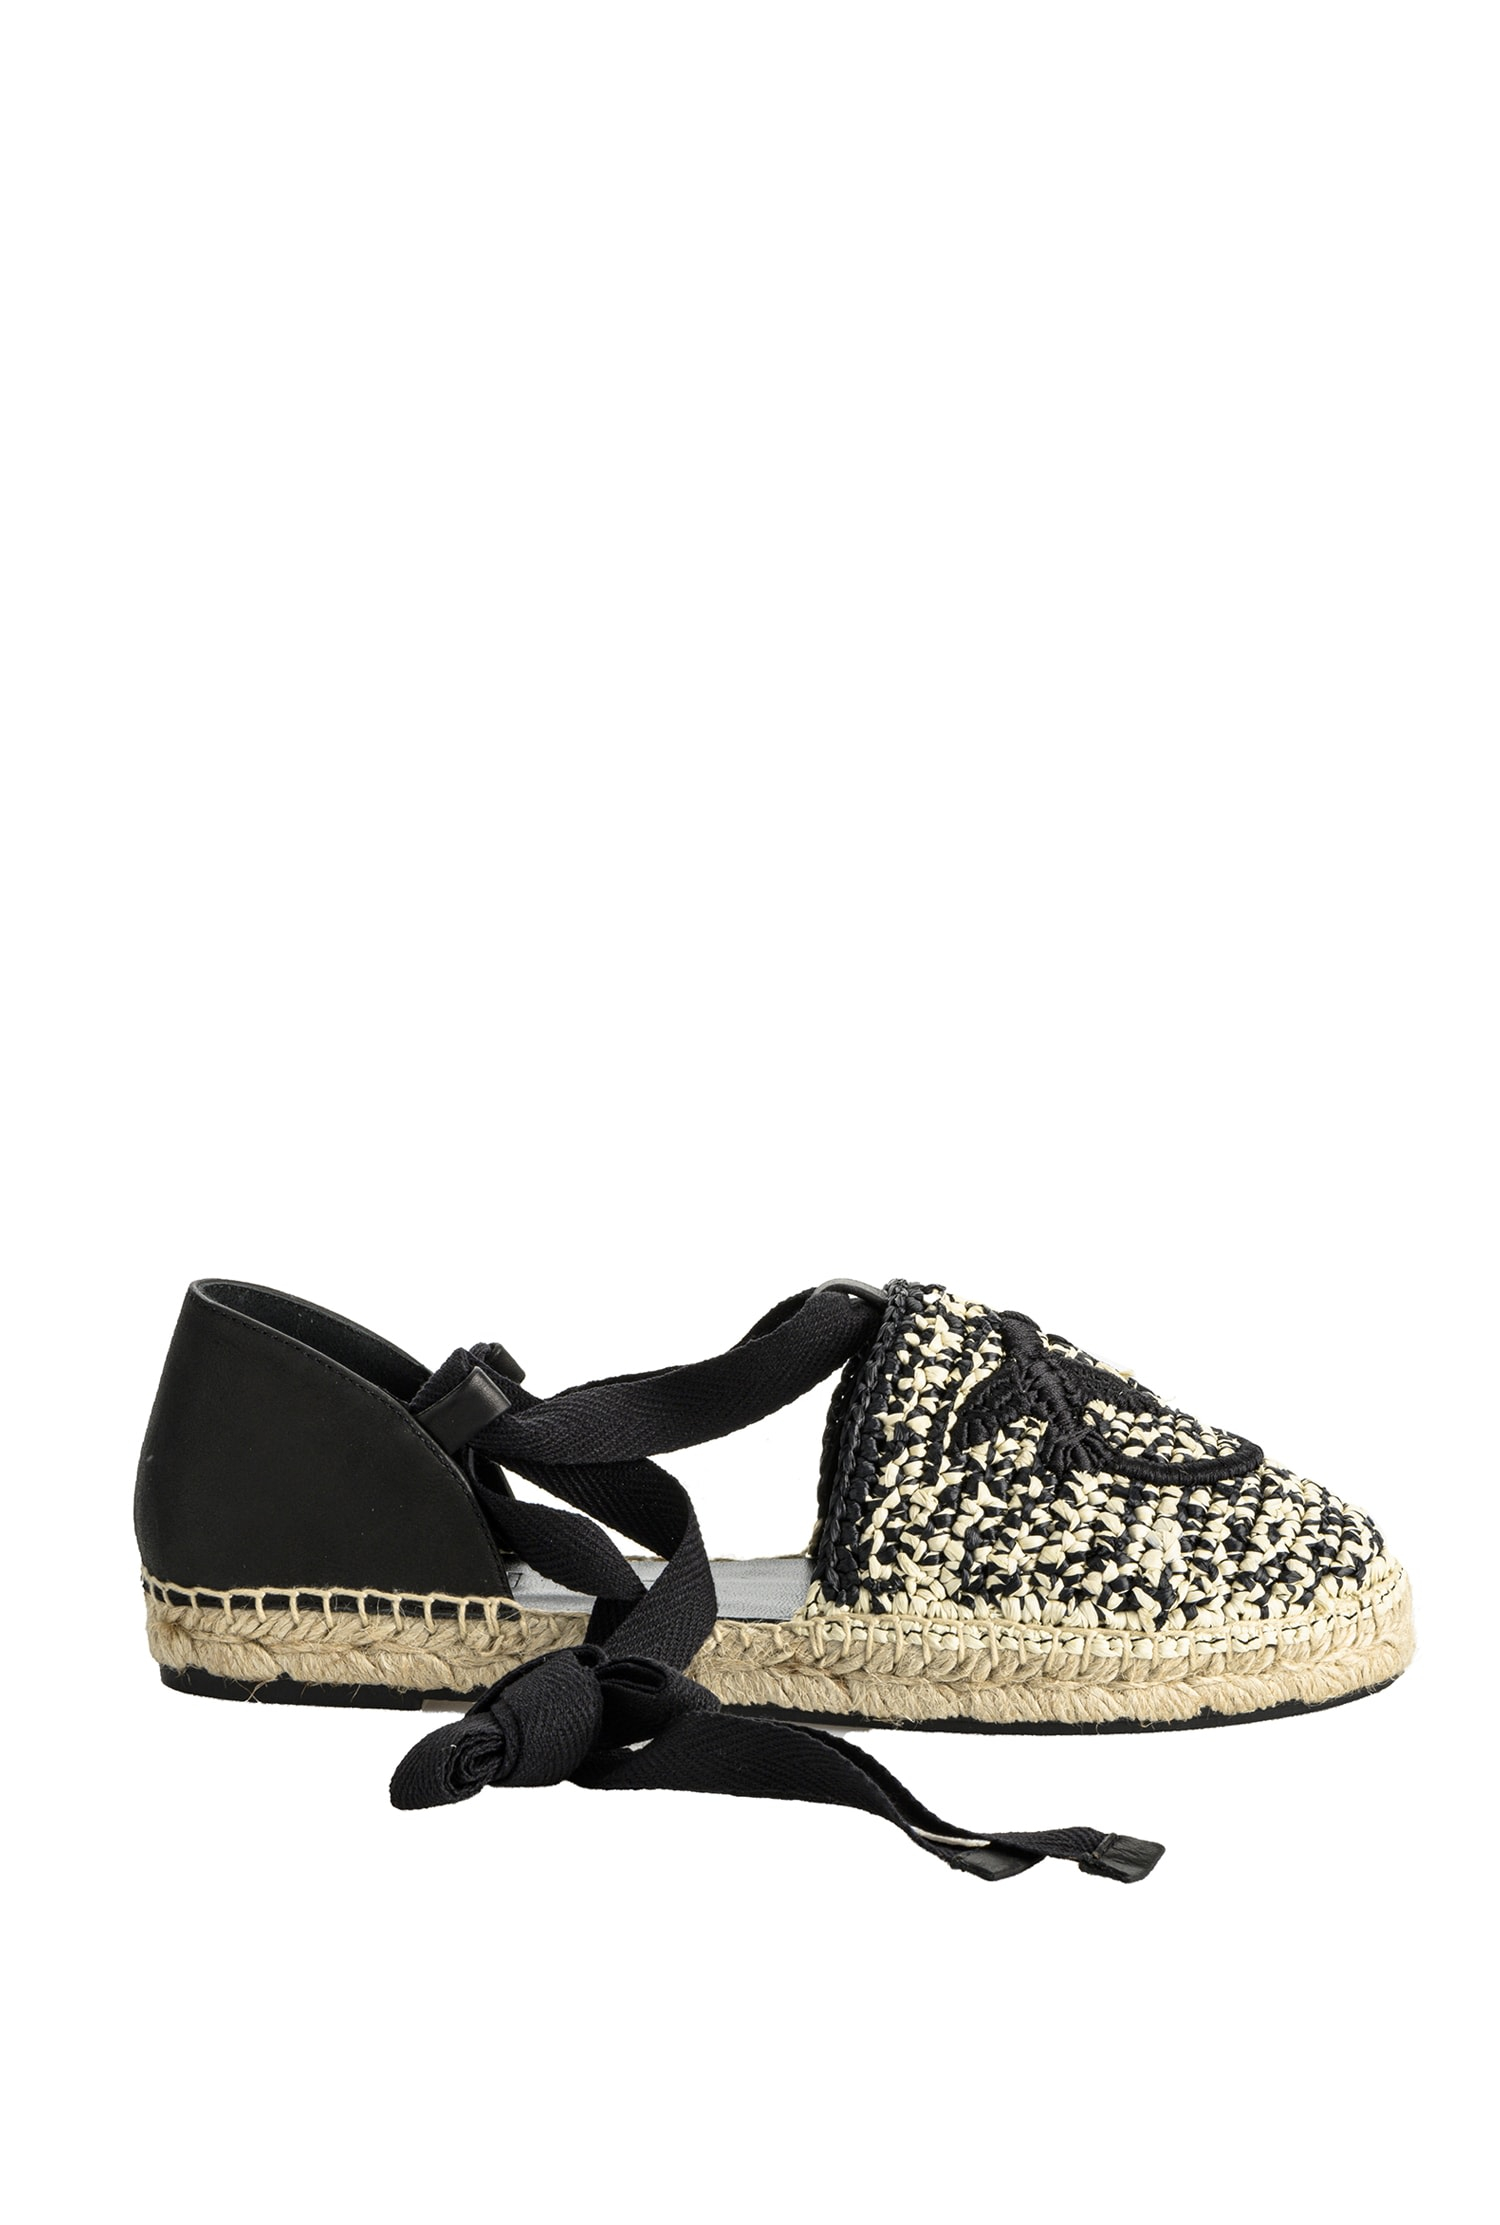 SHOPPING ON LINE PINKO ESPADRILLAS RAFIA LOVE BIRDS DAPHNE NEW COLLECTION WOMEN'S SPRING SUMMER 2021